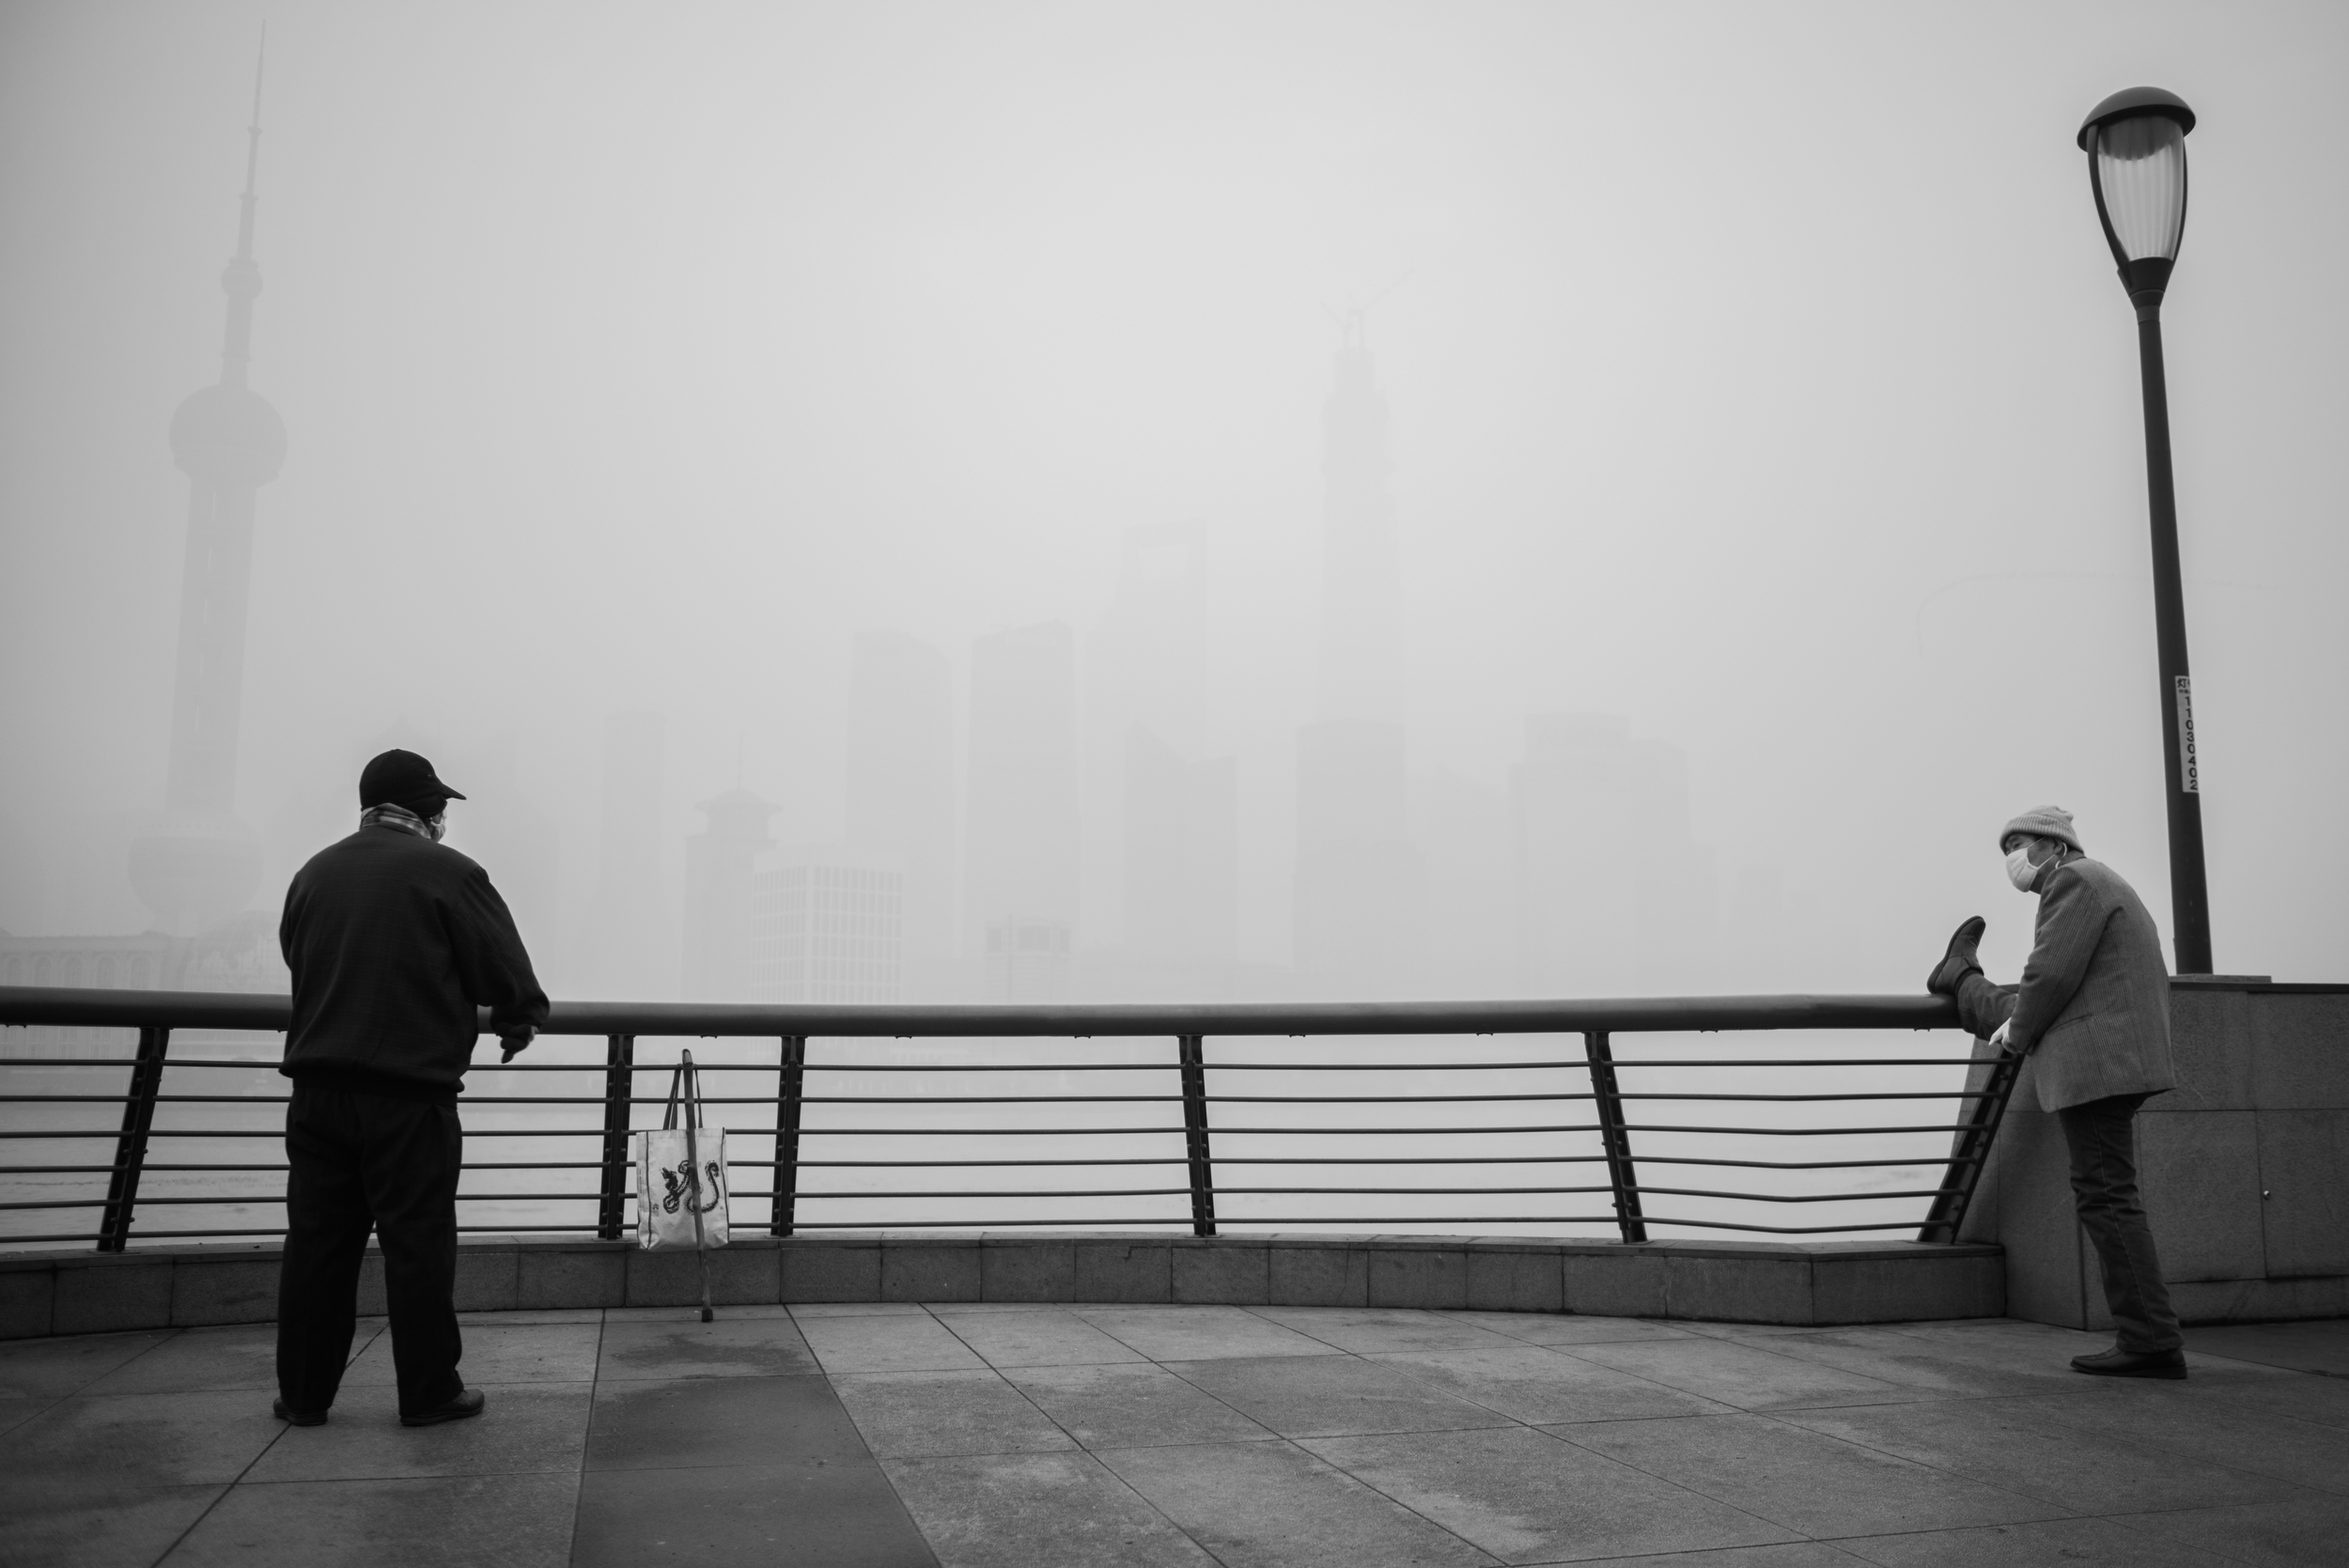 These guys were having a casual chat on the Bund at 6am, most likely about the pollution that managed to pull a curtain of smog across an otherwise magical sunrise view!